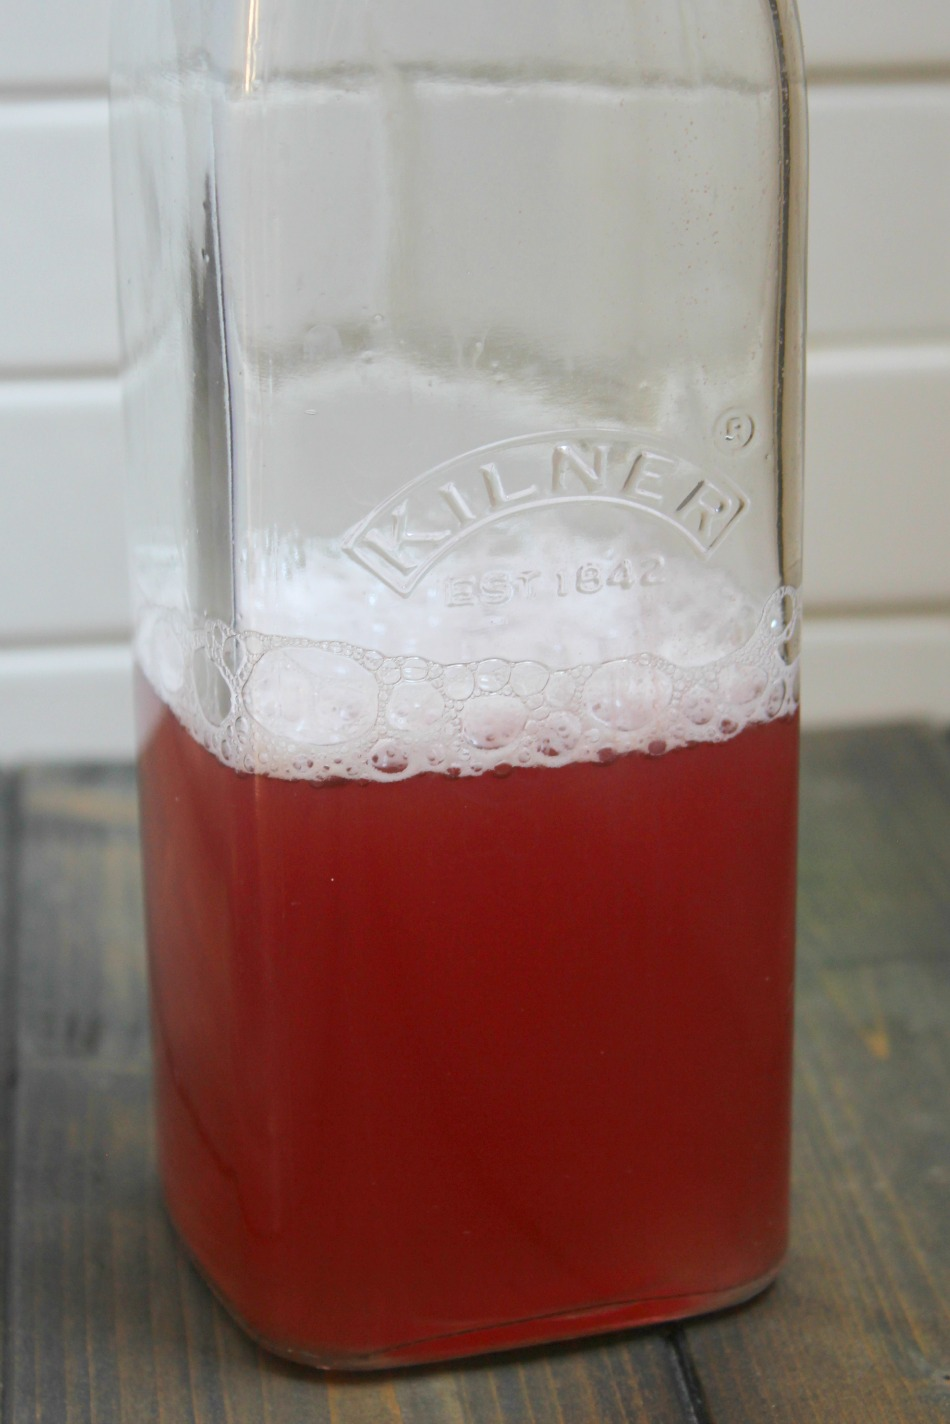 How To Make A Flavorful & Fizzy Batch of Probiotic Water Kefir   Growing Up Herbal   This water kefir recipe is sure to turn out with a delightful flavor and fizz that will make your tounge and tummy happy in more ways than one!